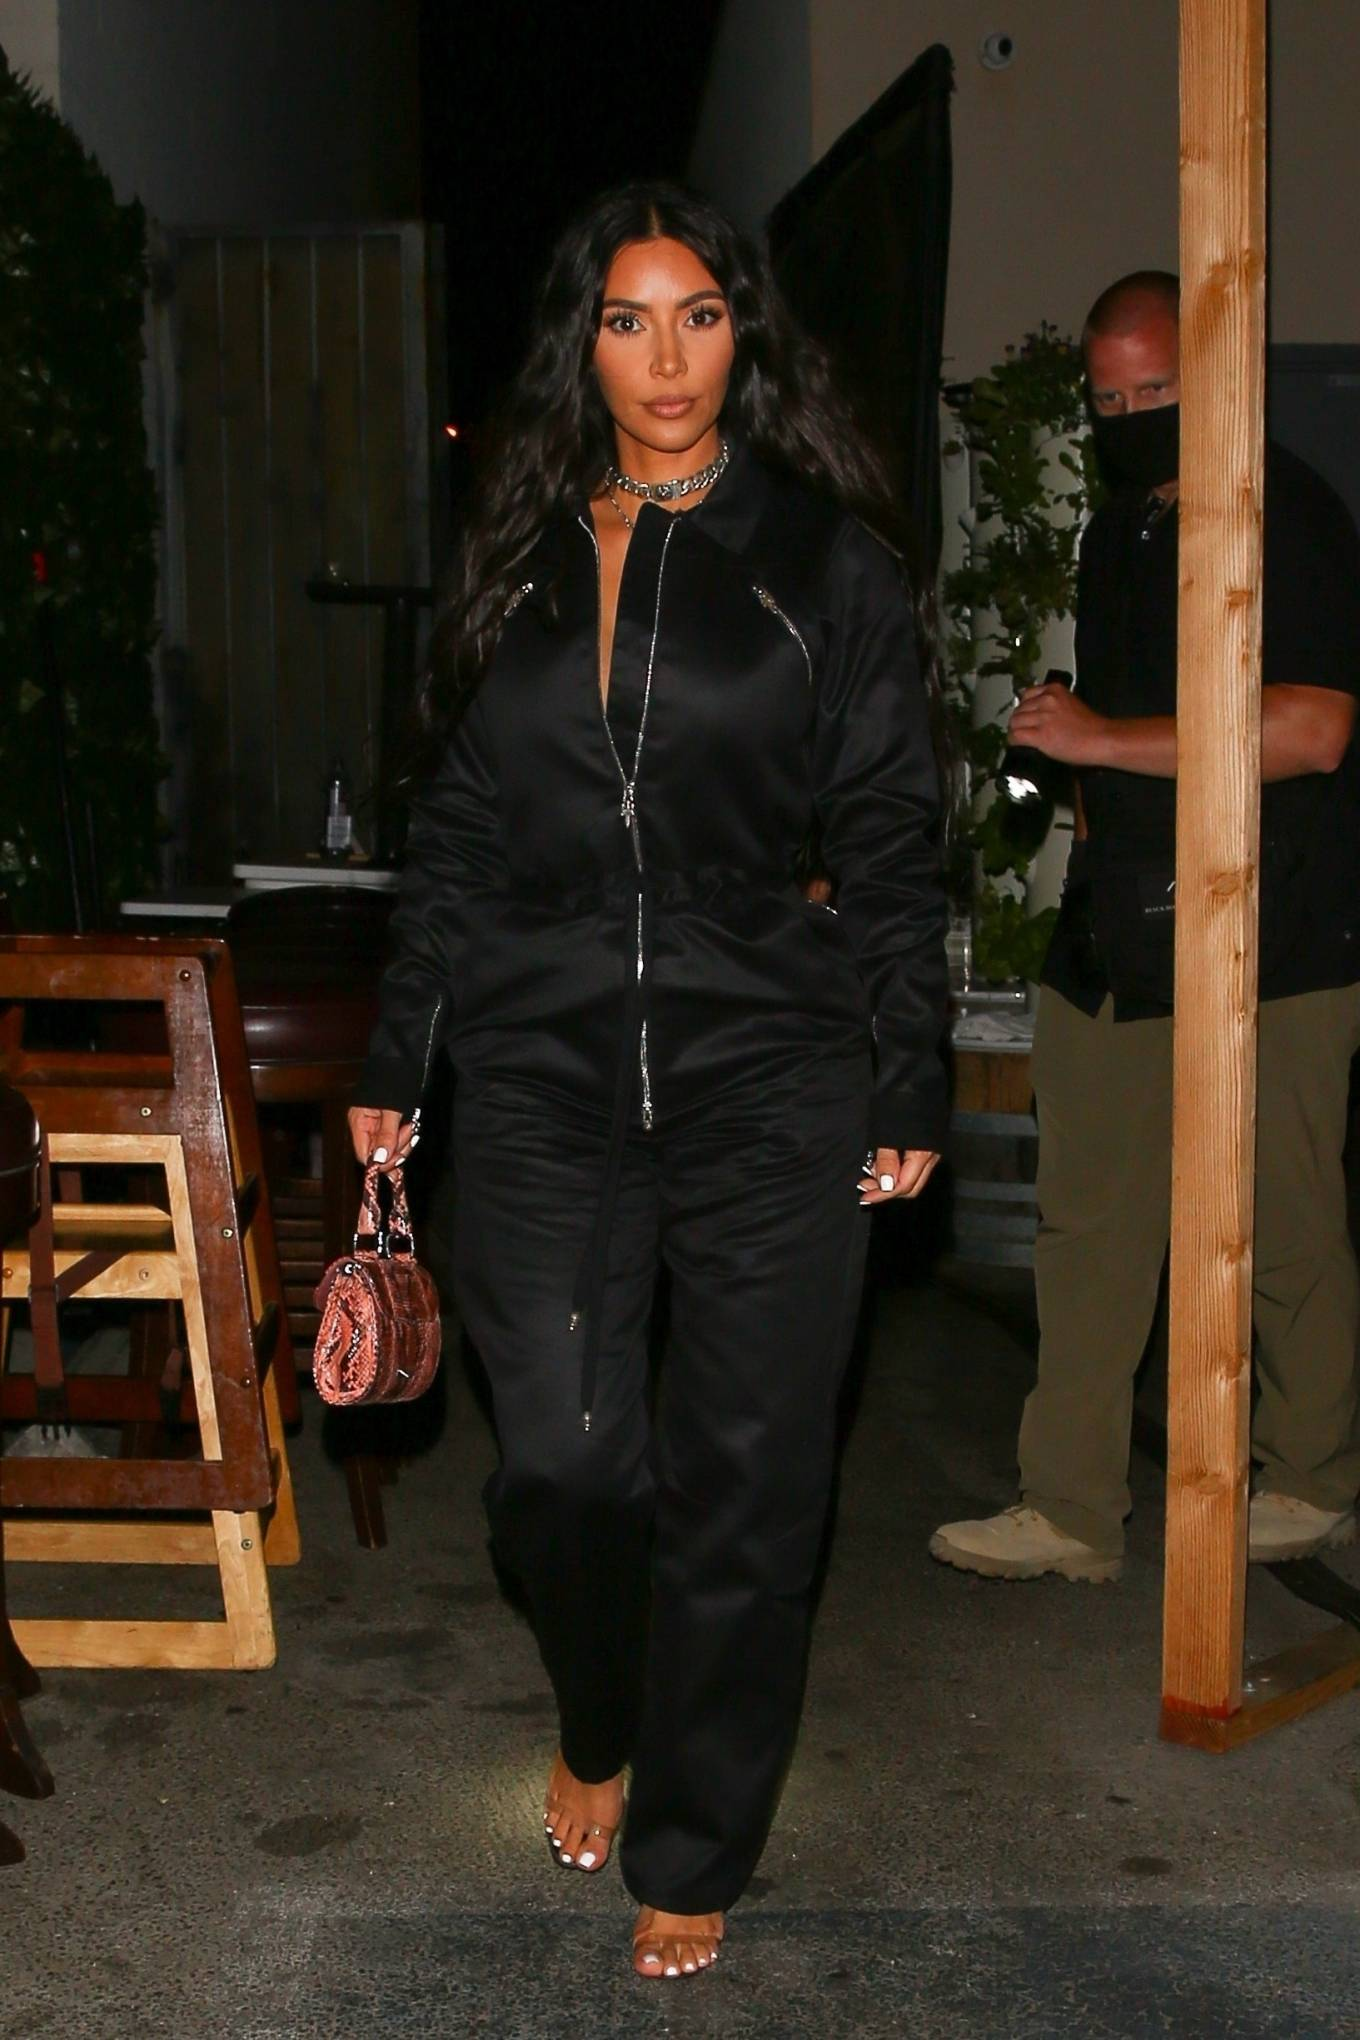 Kim Kardashian donning a relaxed fit black jumpsuit with a denim fabric, full sleeves, drawstring and cinched waist